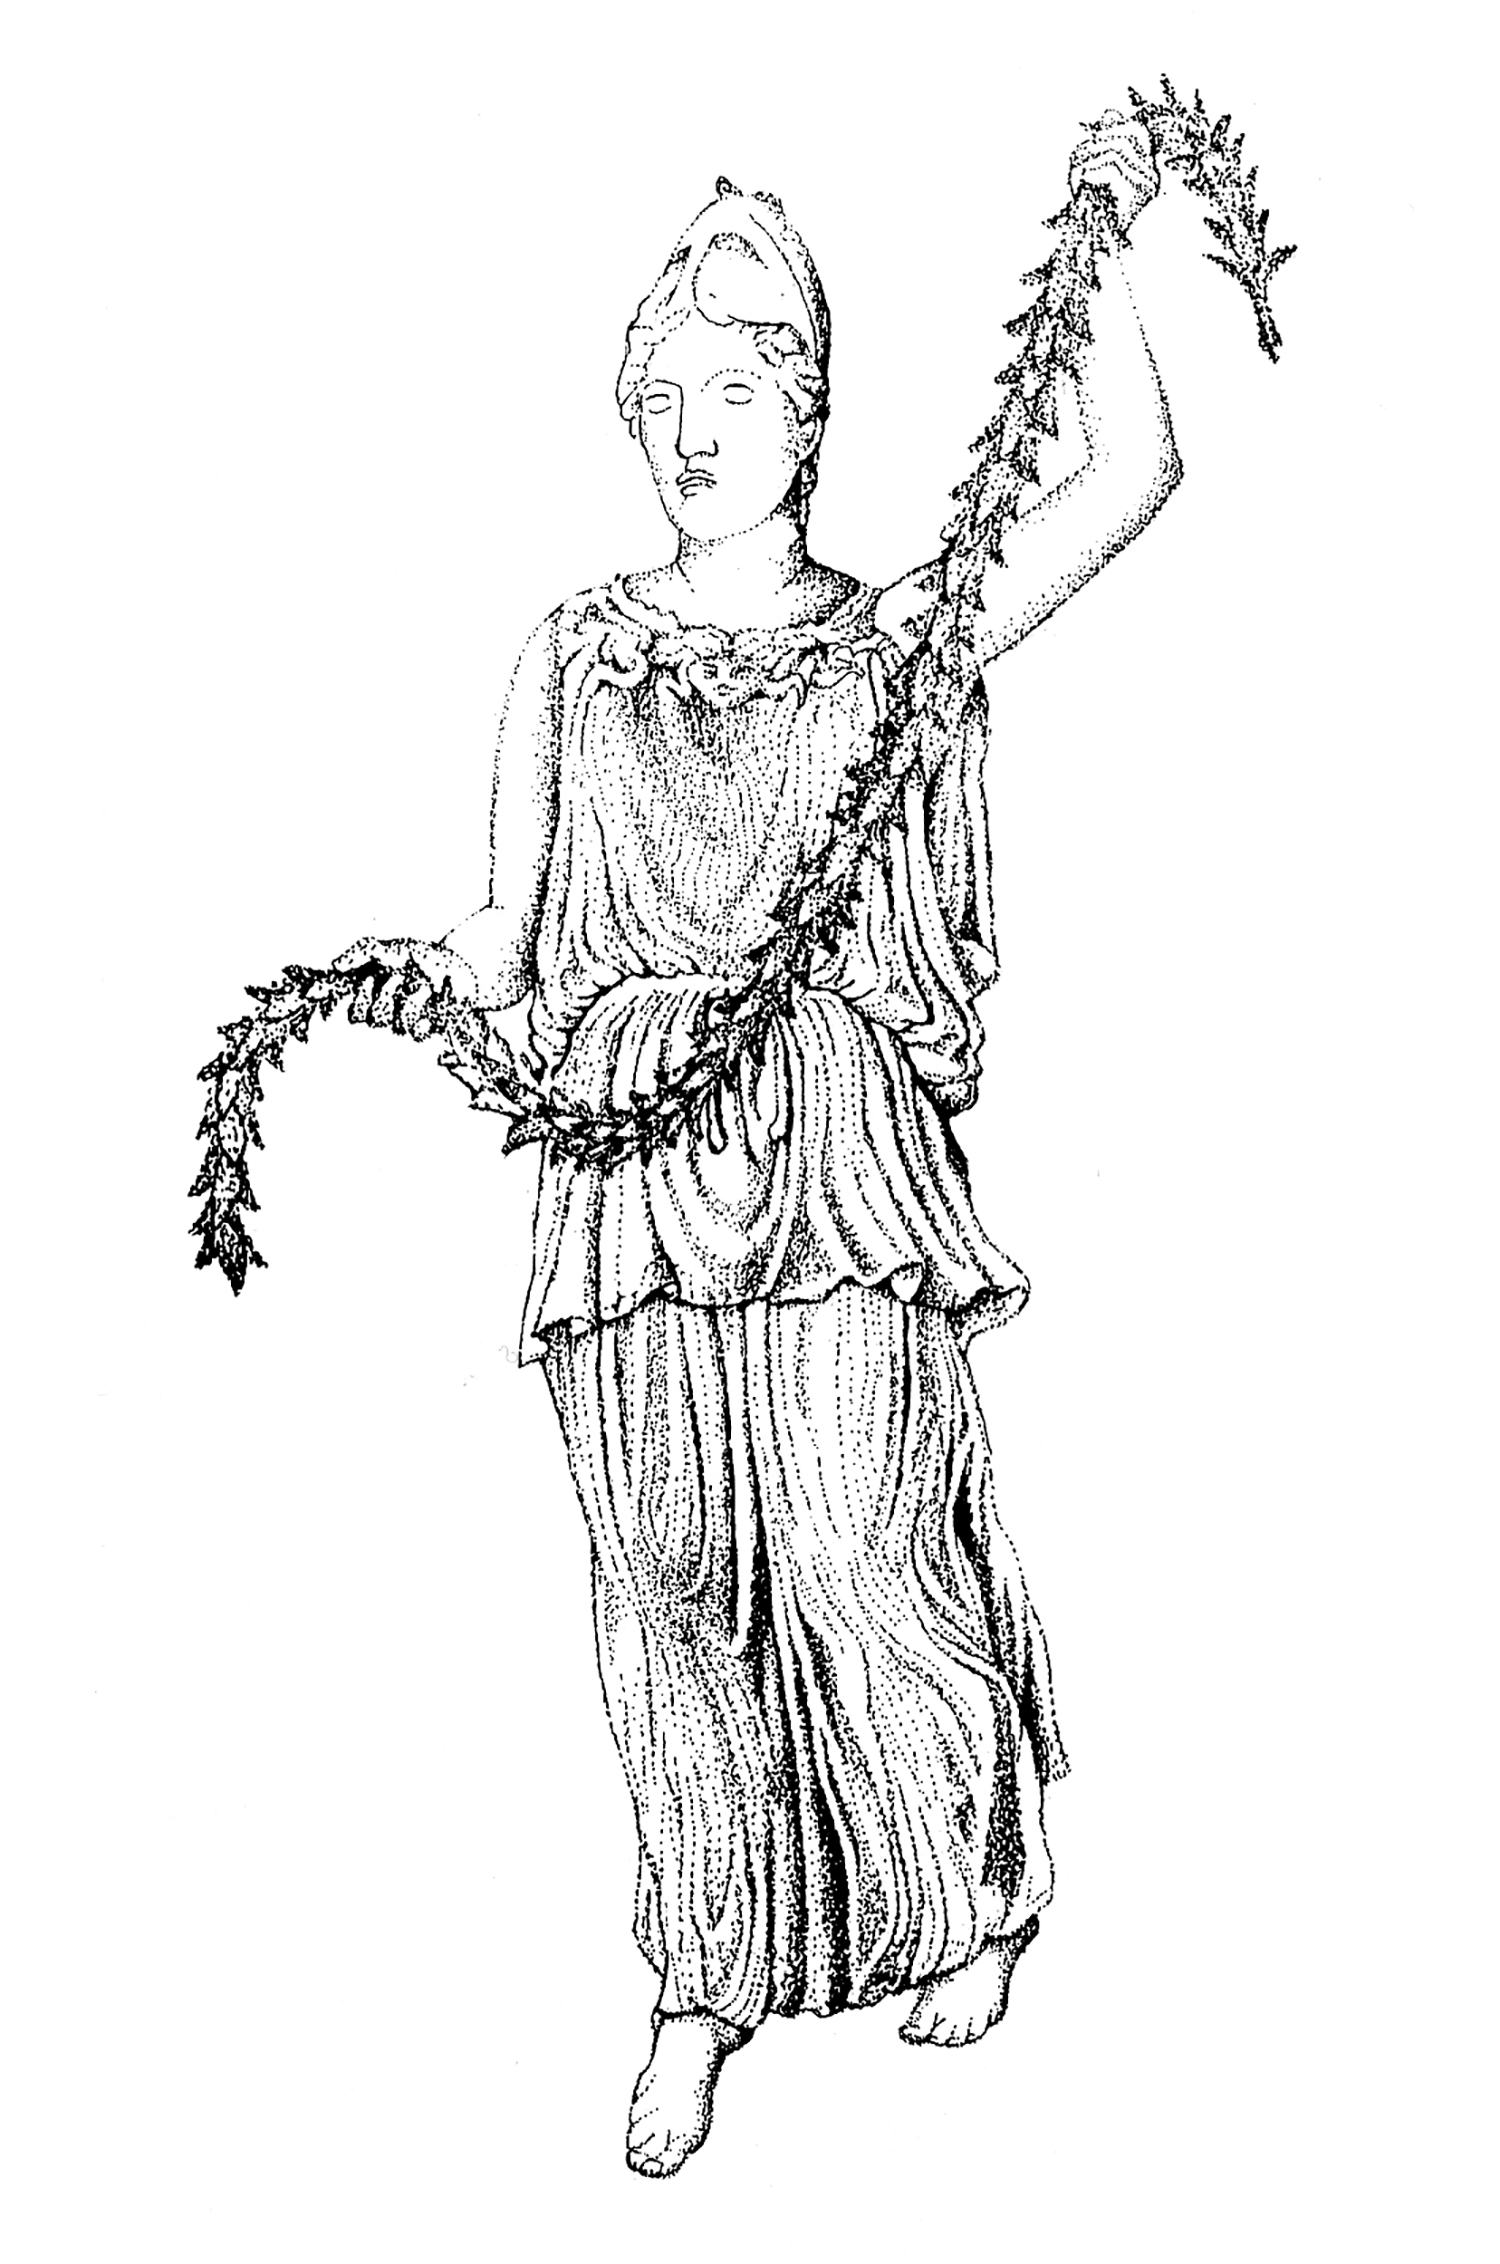 Figure 4: Reconstruction Drawing by Martha Gyllenhaal.